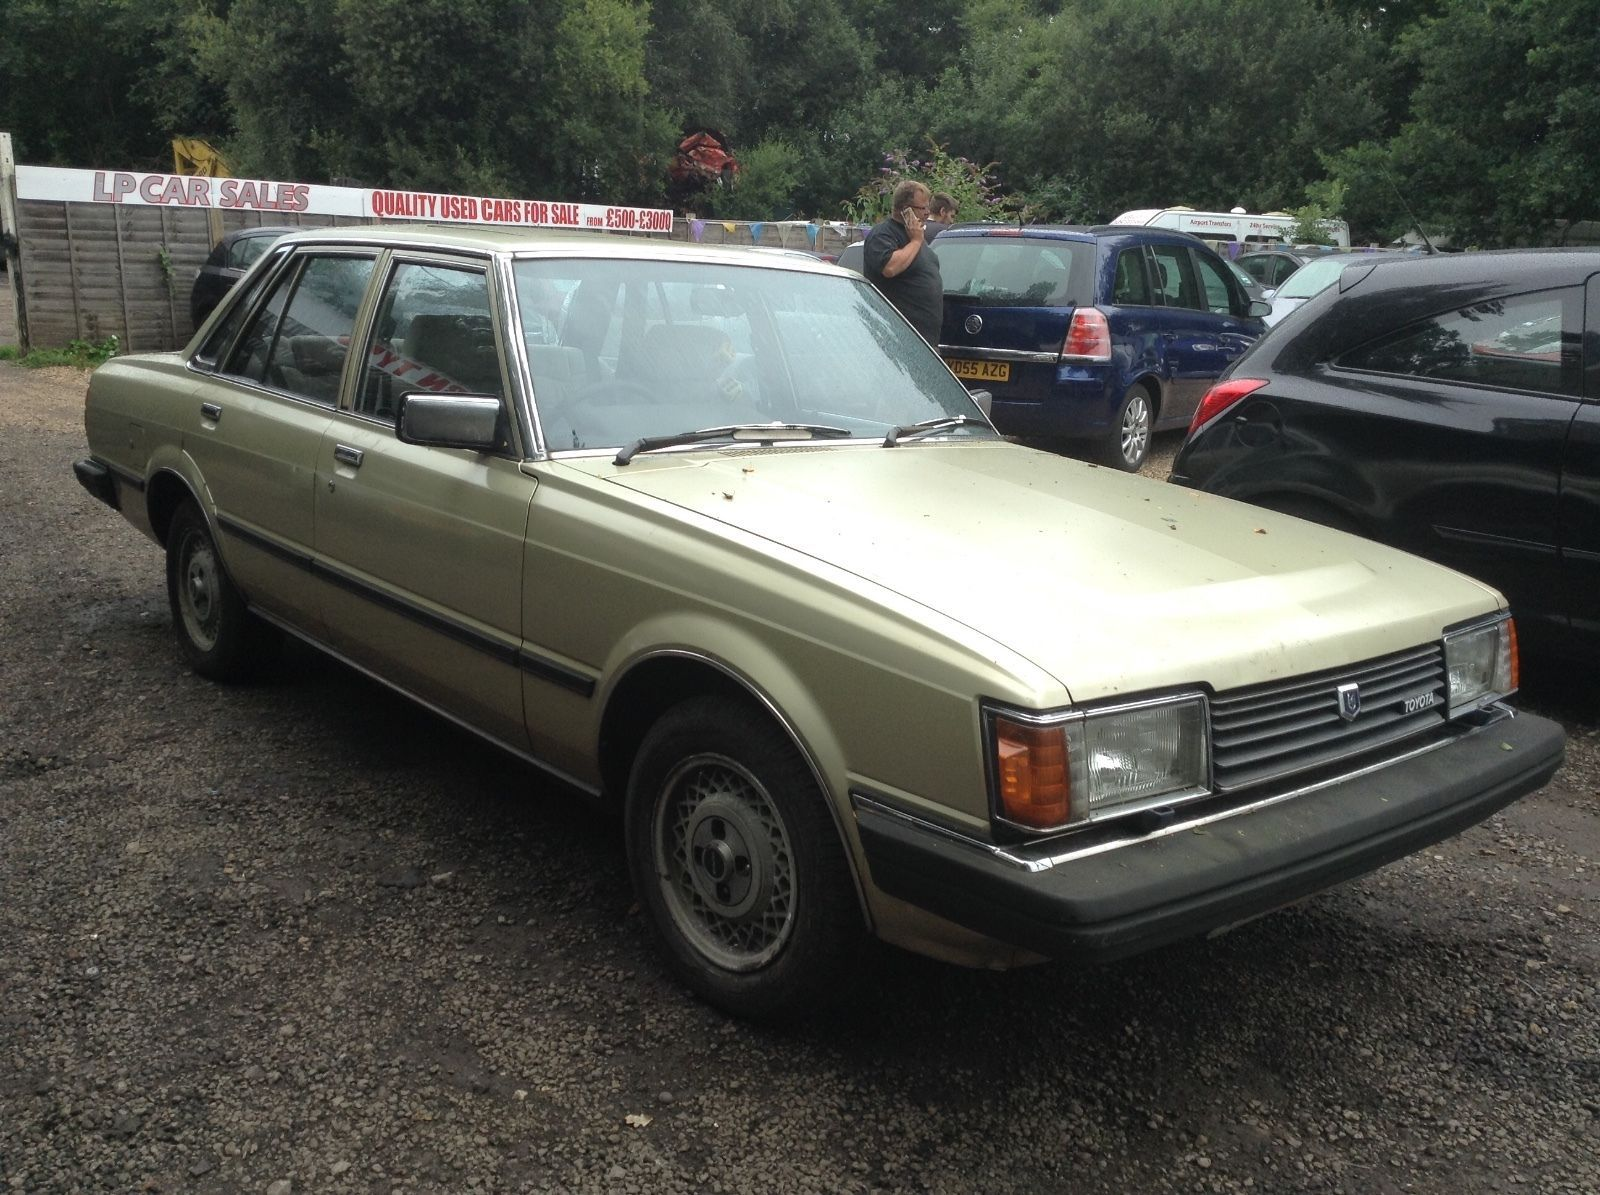 1982 toyota cressida only done 46000 miles | Pinterest | Toyota and Cars